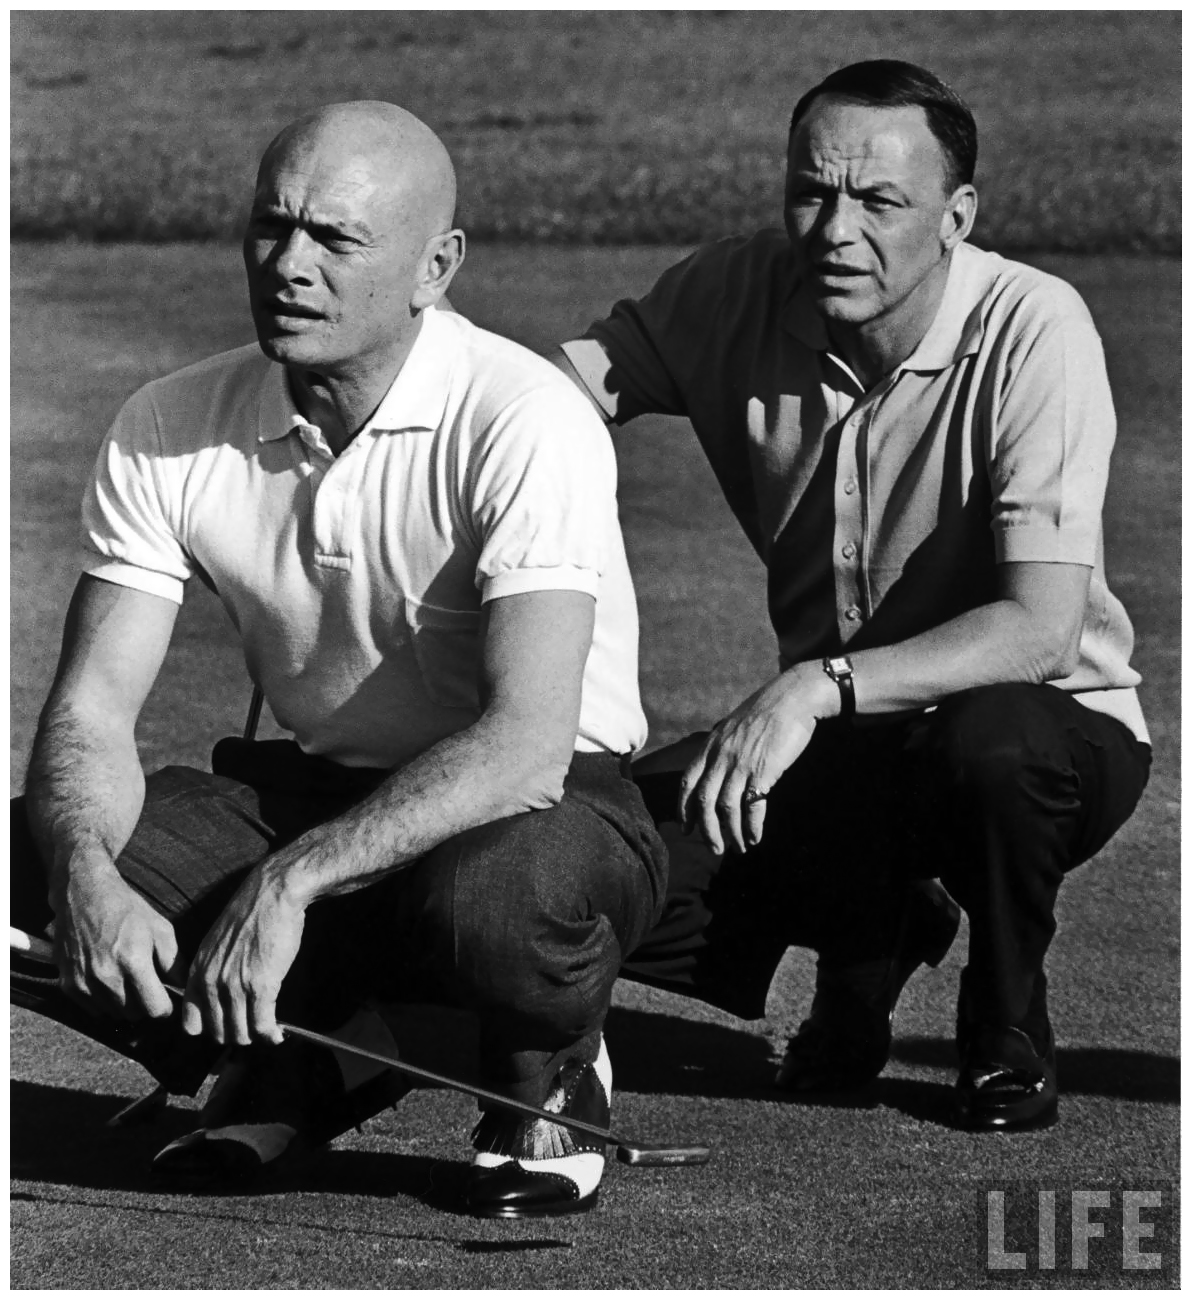 photo-john-dominis-l-r-actor-yul-brynner